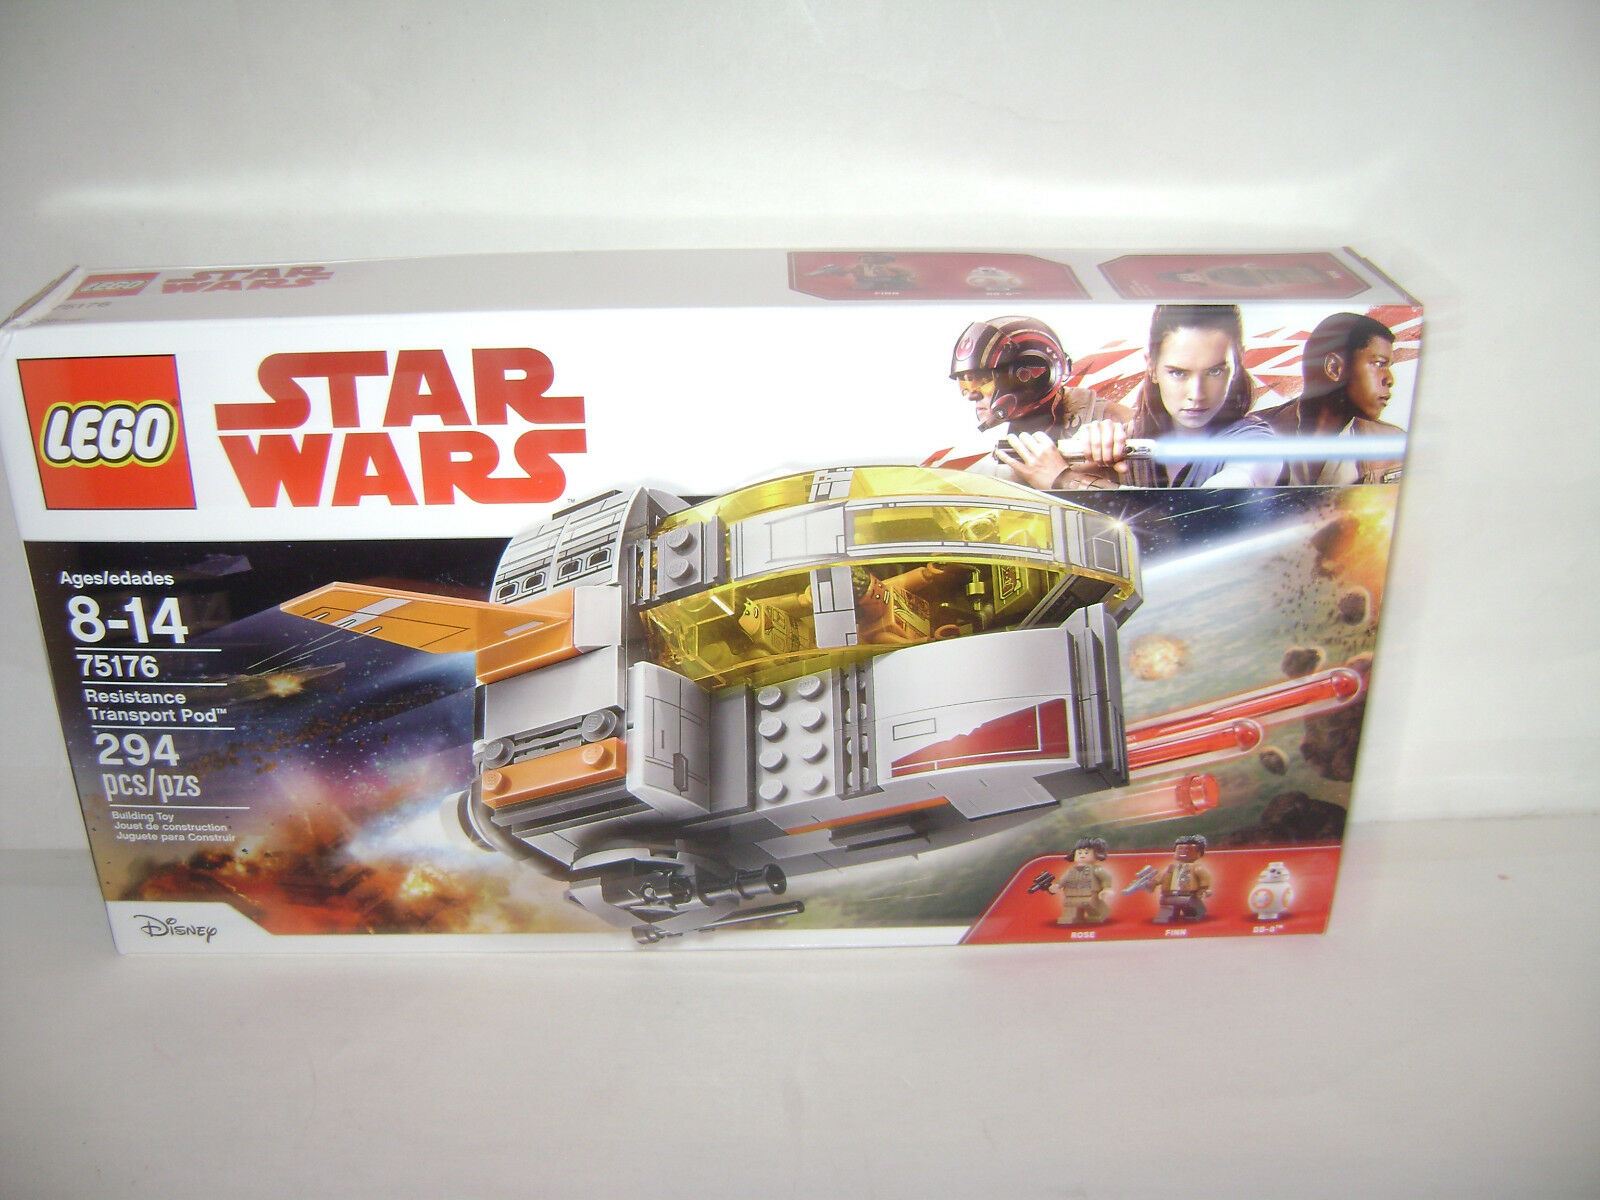 LEGO 75176 STAR WARS Resistance Transport Transport Transport Pod pink Finn BB 8 Toy NEW Sealed A ad74ba